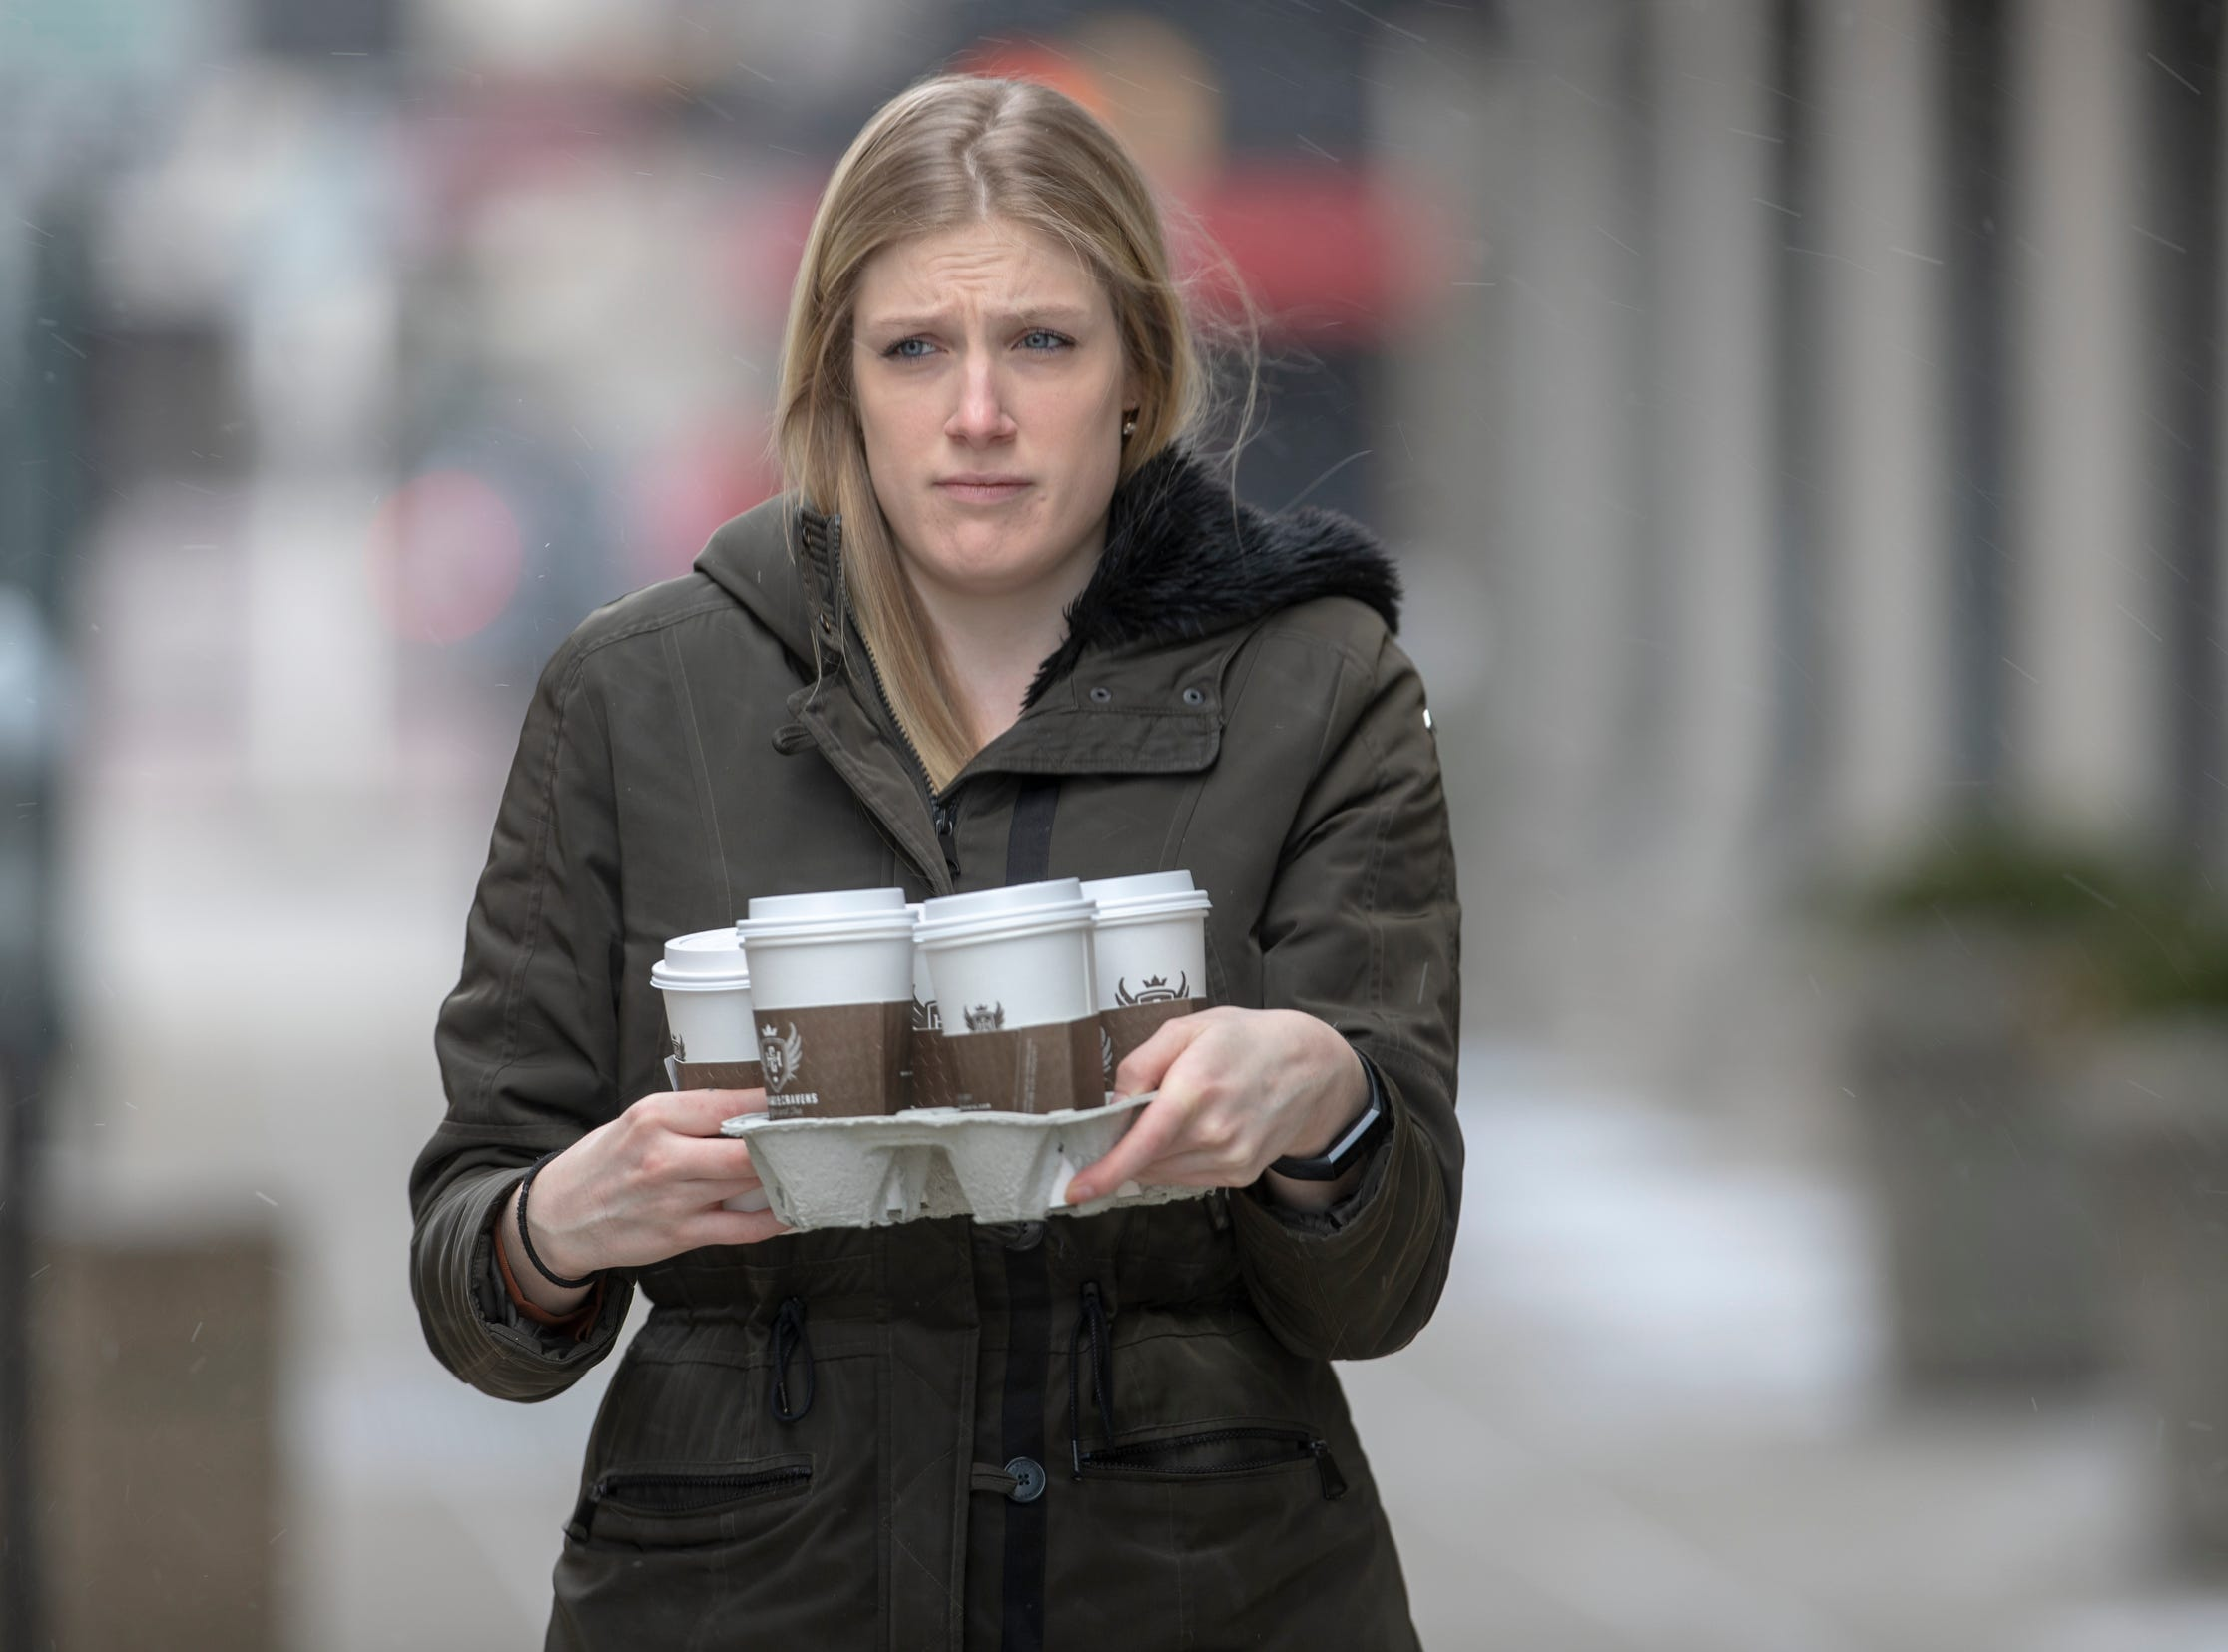 Courtney Kronzer makes a coffee run on a cold day of about 15 degrees in central Indiana, Indianapolis, Tuesday, Jan. 29, 2019. Kronzer, originally from Virginia, said her hands aren't doing too well during the half-block walk from the coffee shop to her office.